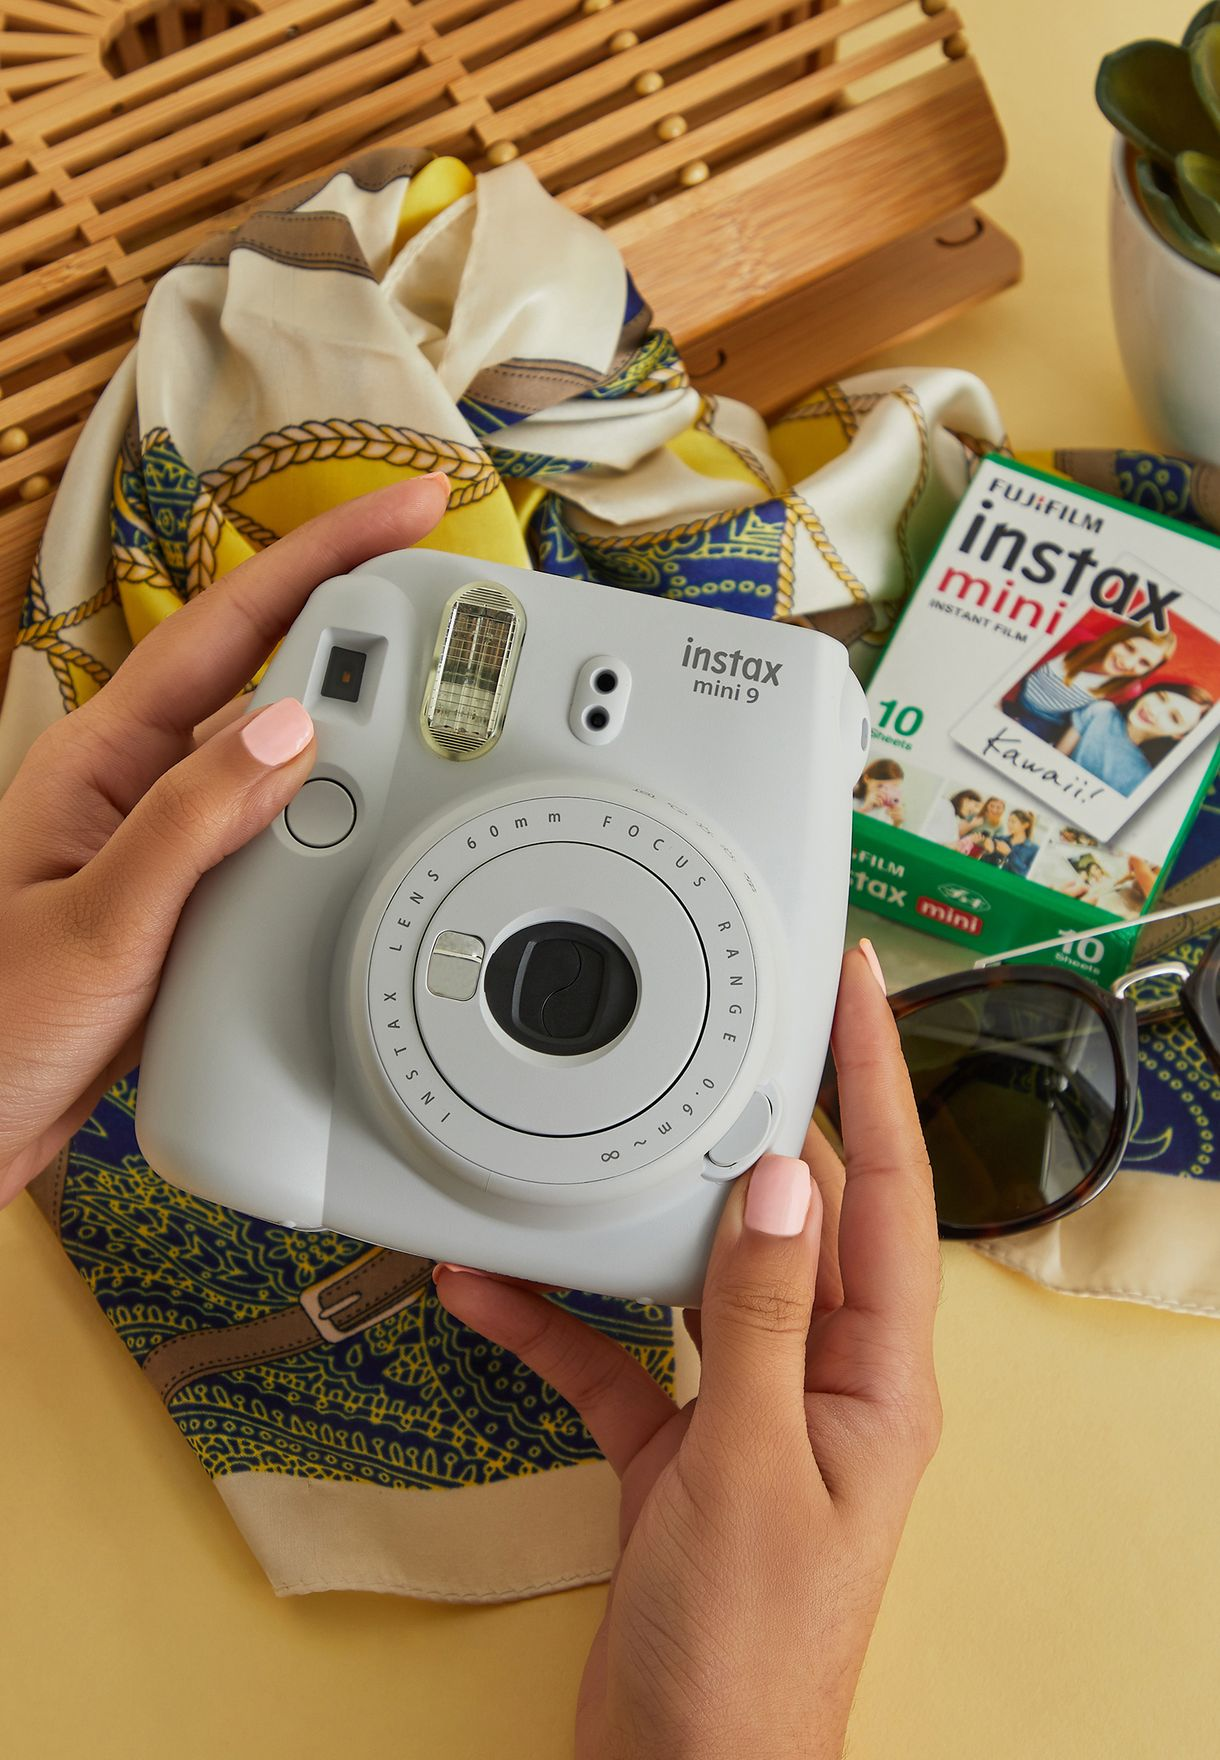 Mini Smoky Instax Camera + Instax Mini Film